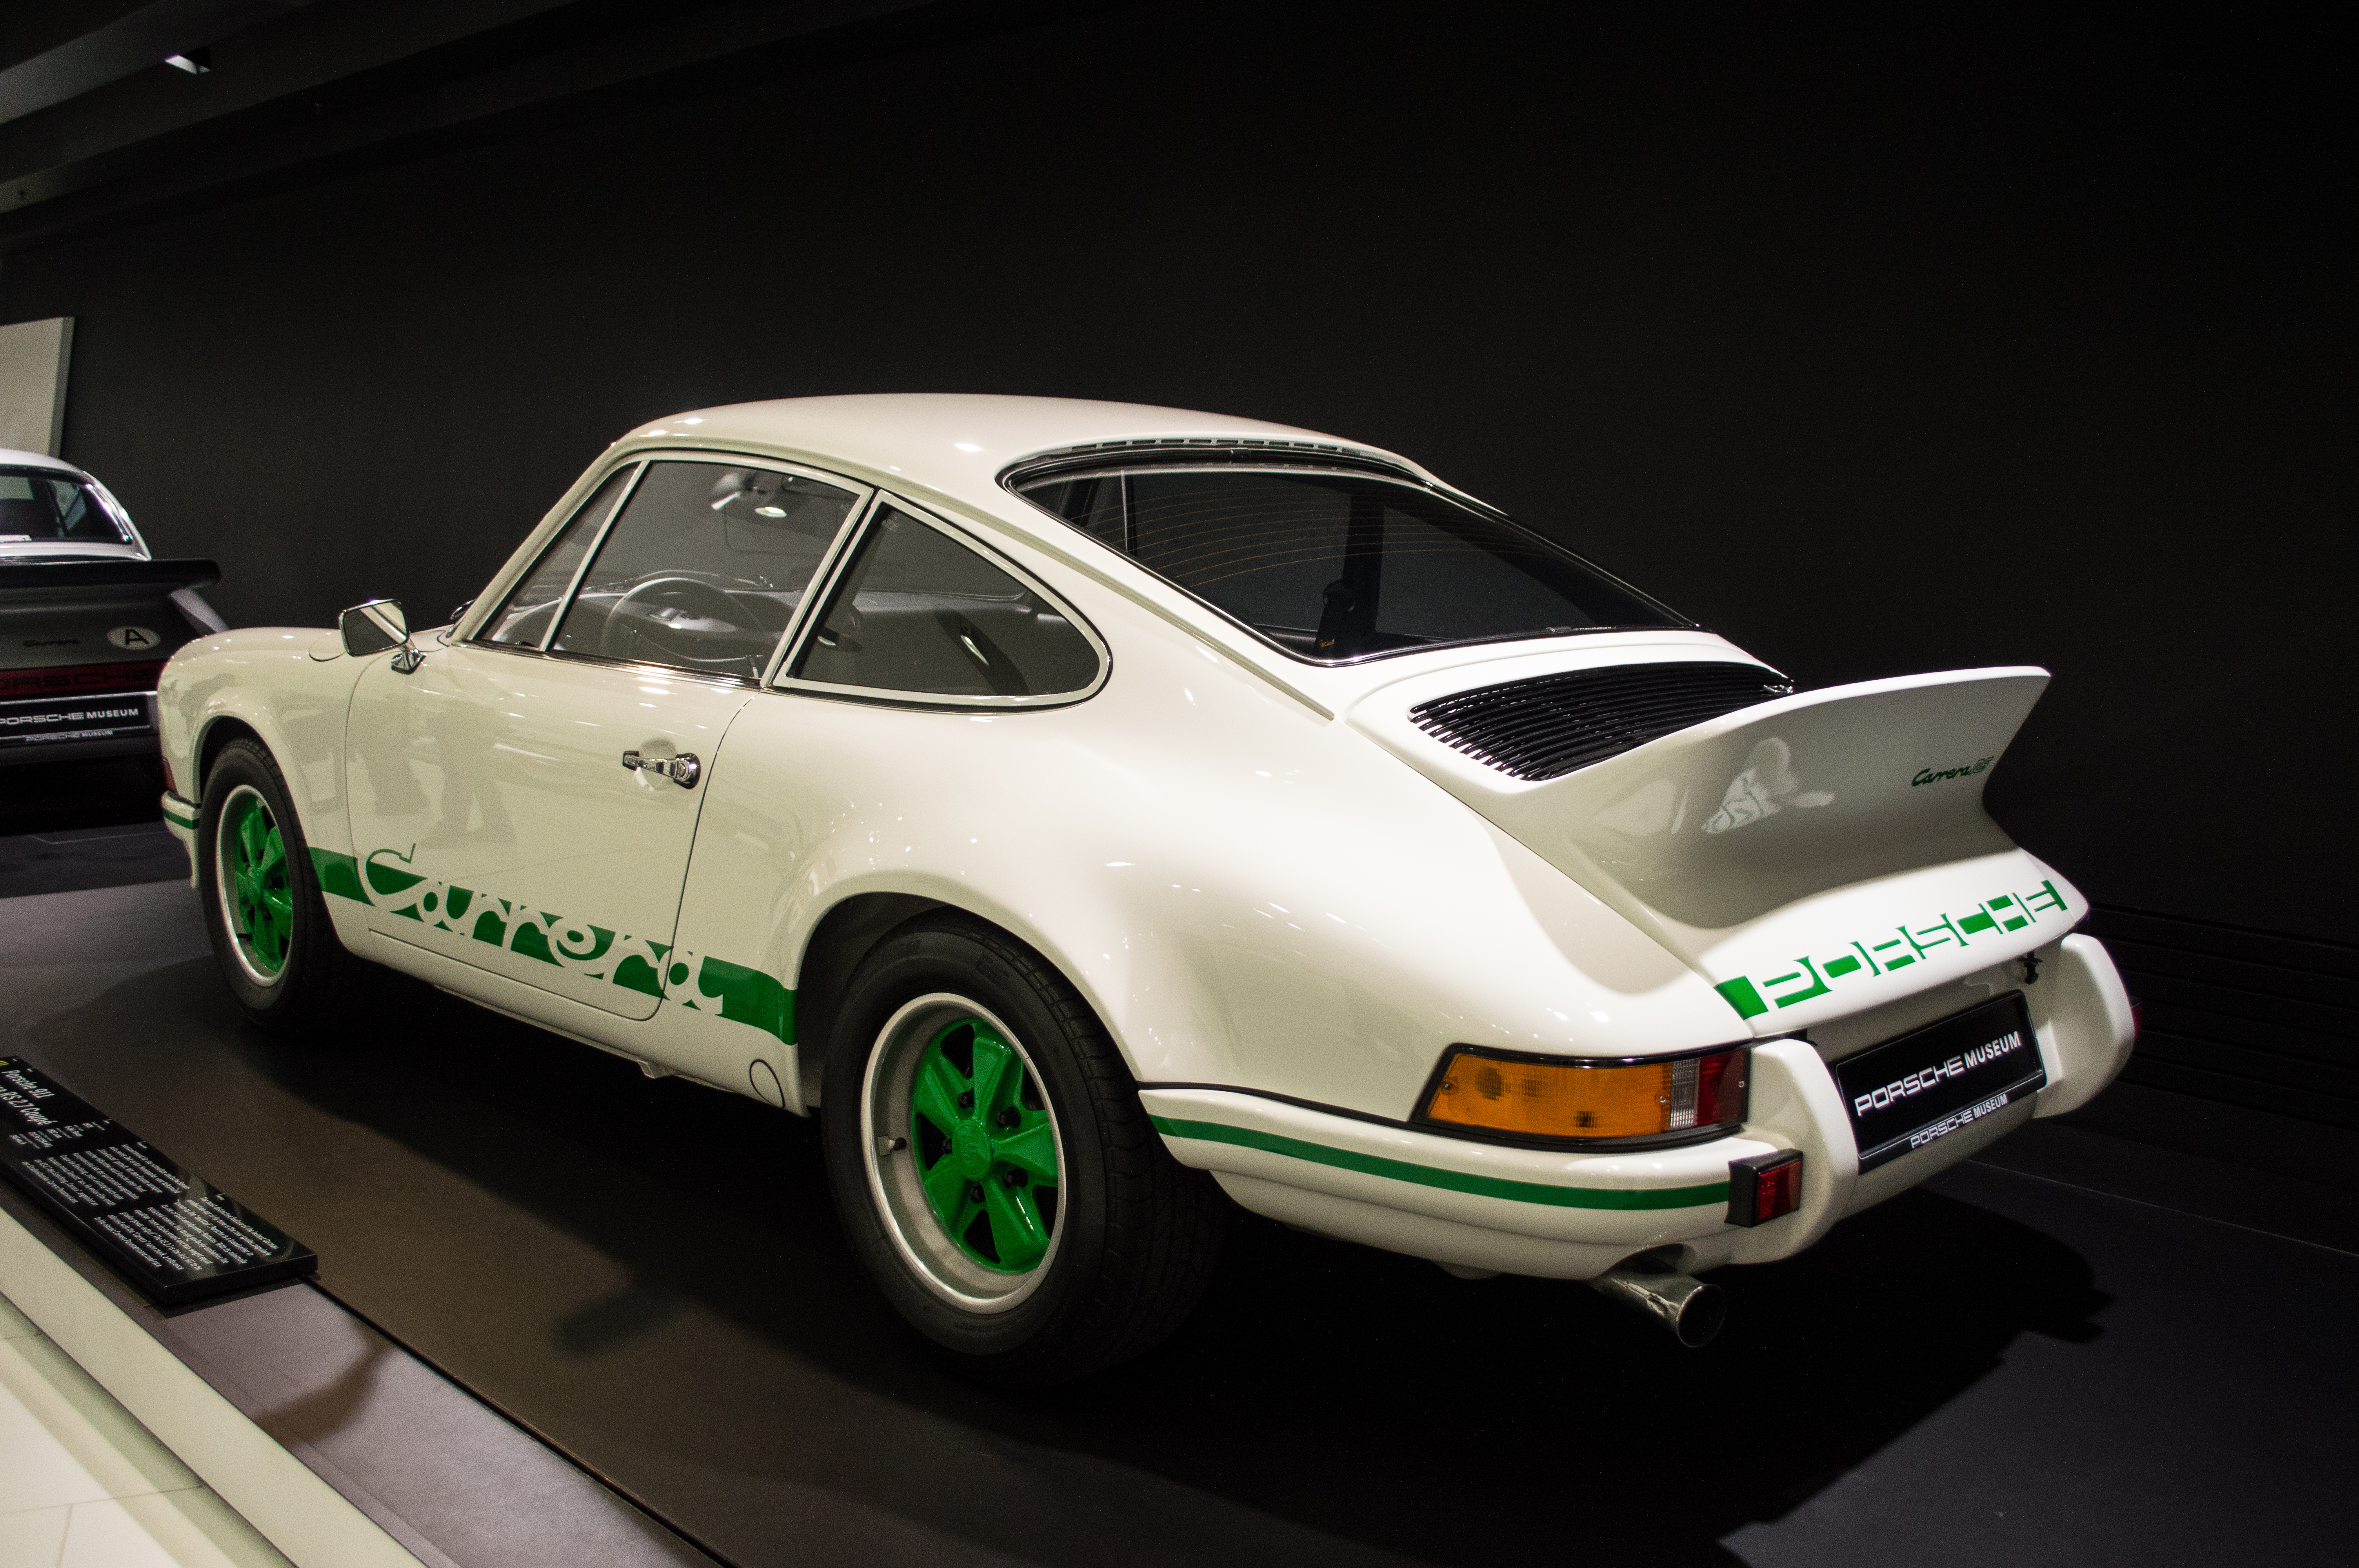 73 911 Carrera Rs 2 7 Coupe Wound For Lifewound For Life